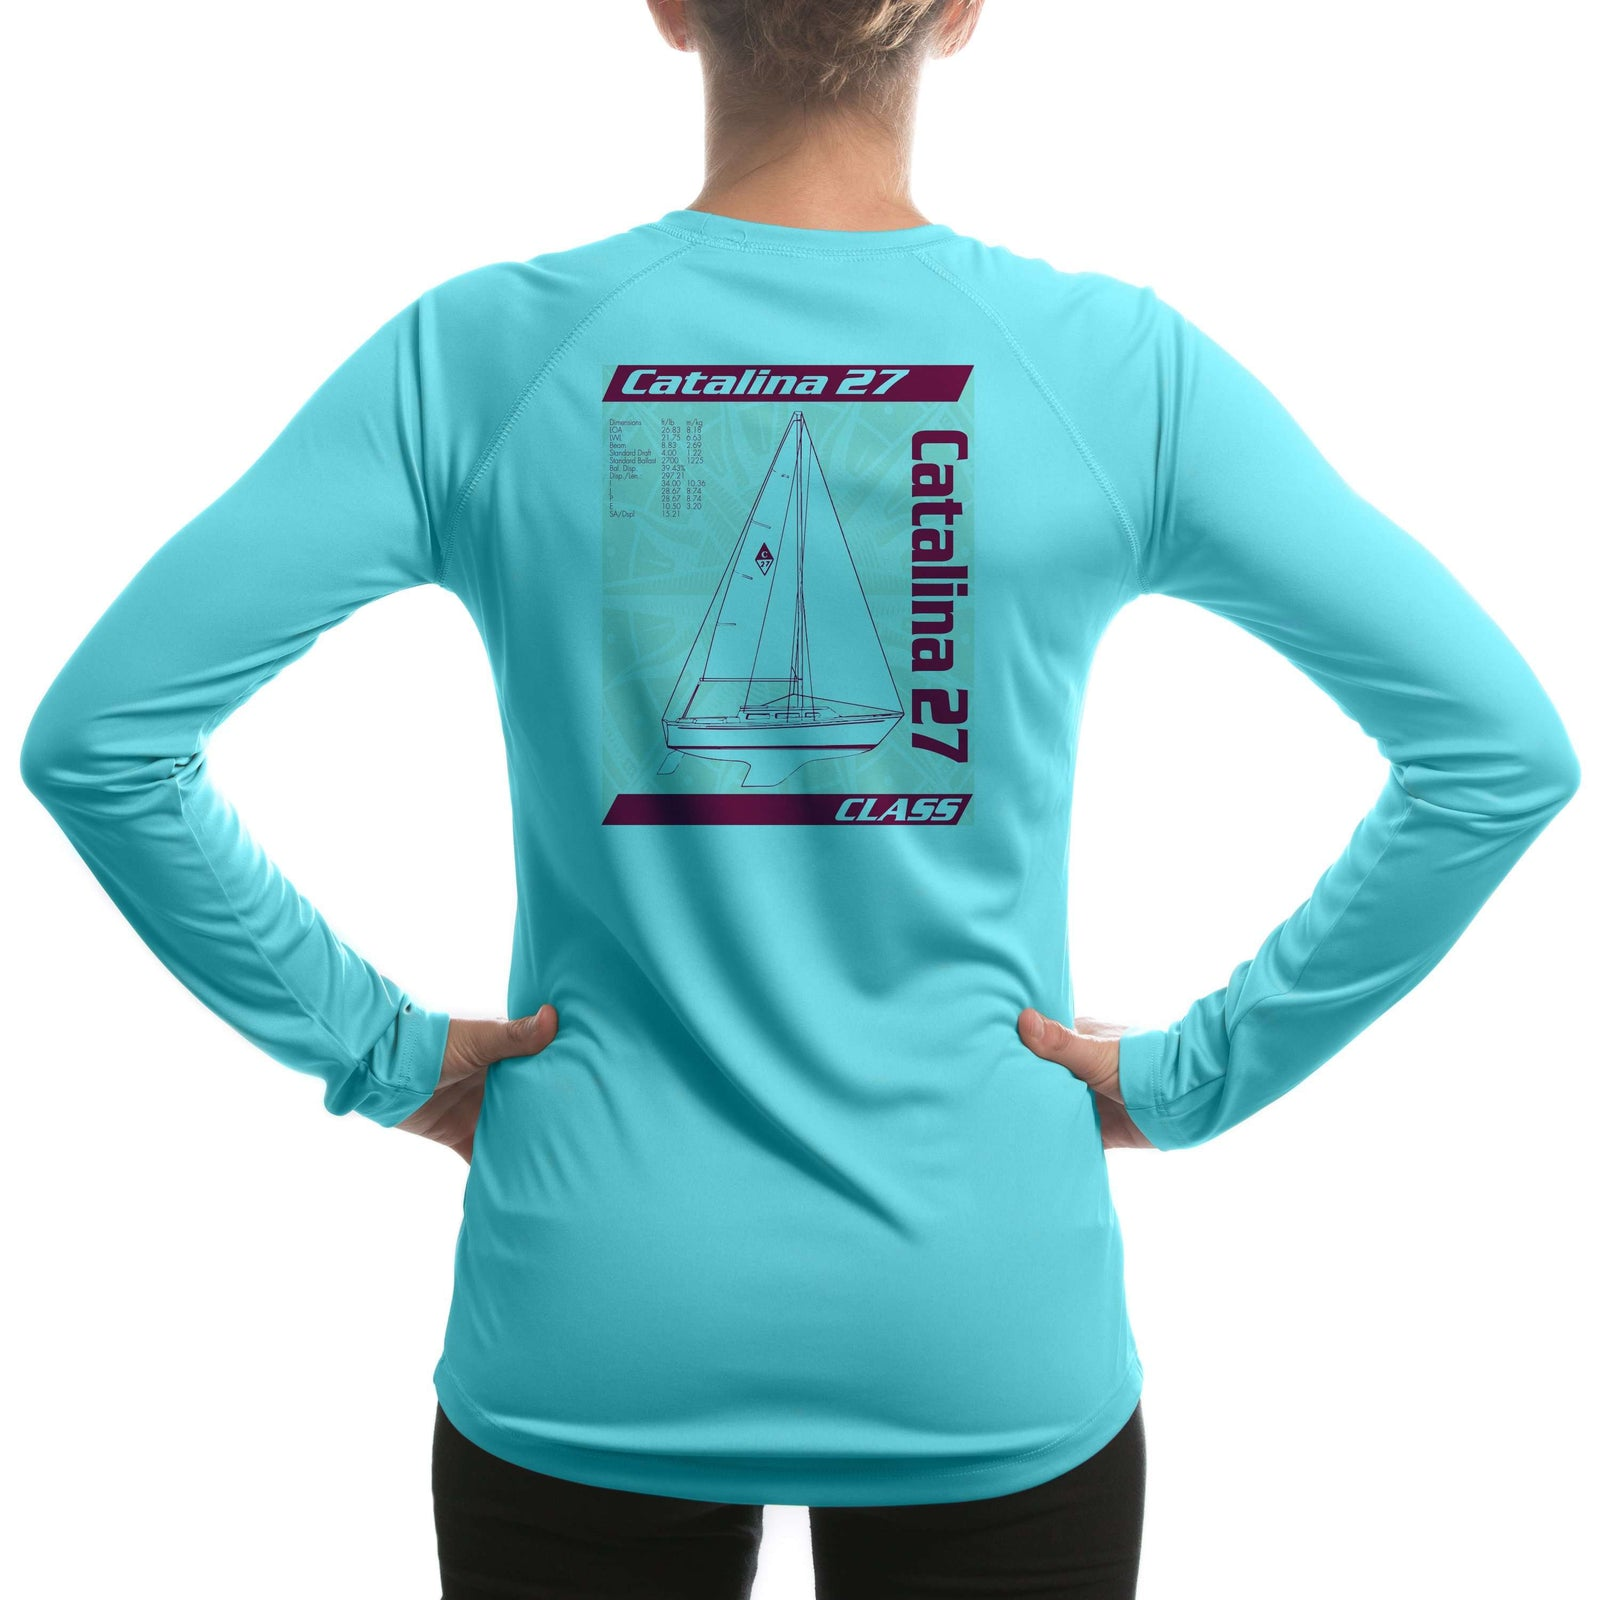 Catalina 27 Class Sailboat Women's UPF 50+ UV Sun Protection Long Sleeve T-shirt - Altered Latitudes